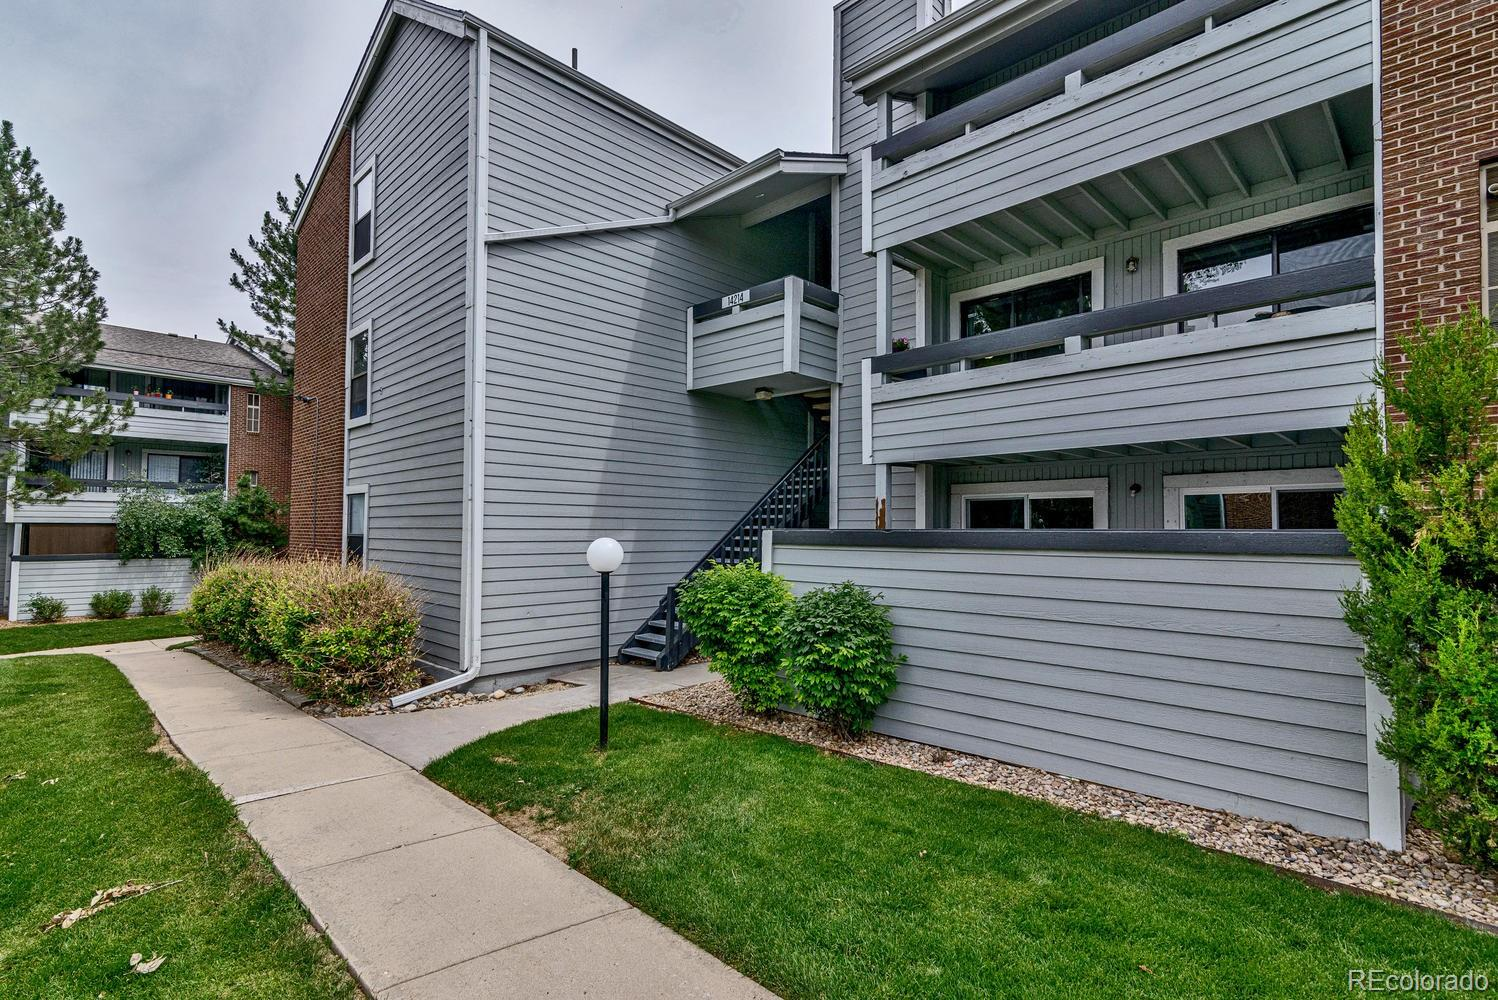 This Unit is located on the second floor and features two bedrooms and two full bathrooms. The kitchen, has been updated with new cabinets, countertops, and flooring. Newer carpet and paint through-out. The living room has a beautiful fireplace with updated tile, large dining area. The laundry room is large and has updated tile flooring. The bathrooms have been updated with flooring and vanities. The balcony looks over the open area with a new private view.  The location is walking distance to shopping and dining, and public transportation. There is one assigned covered parking space with plenty of parking.